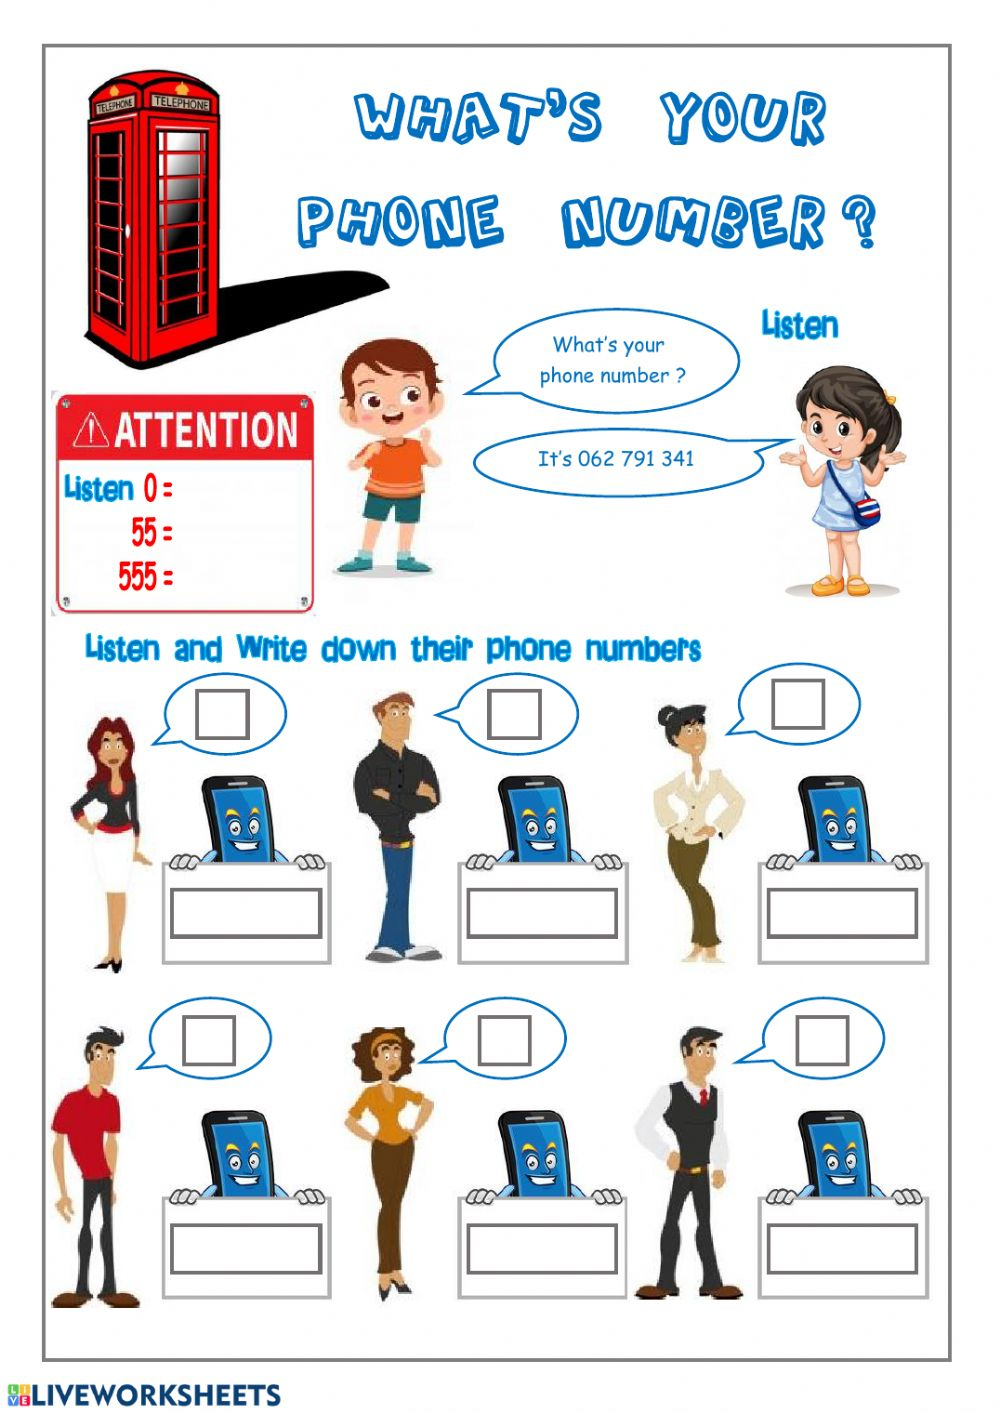 What's your phone number? worksheet